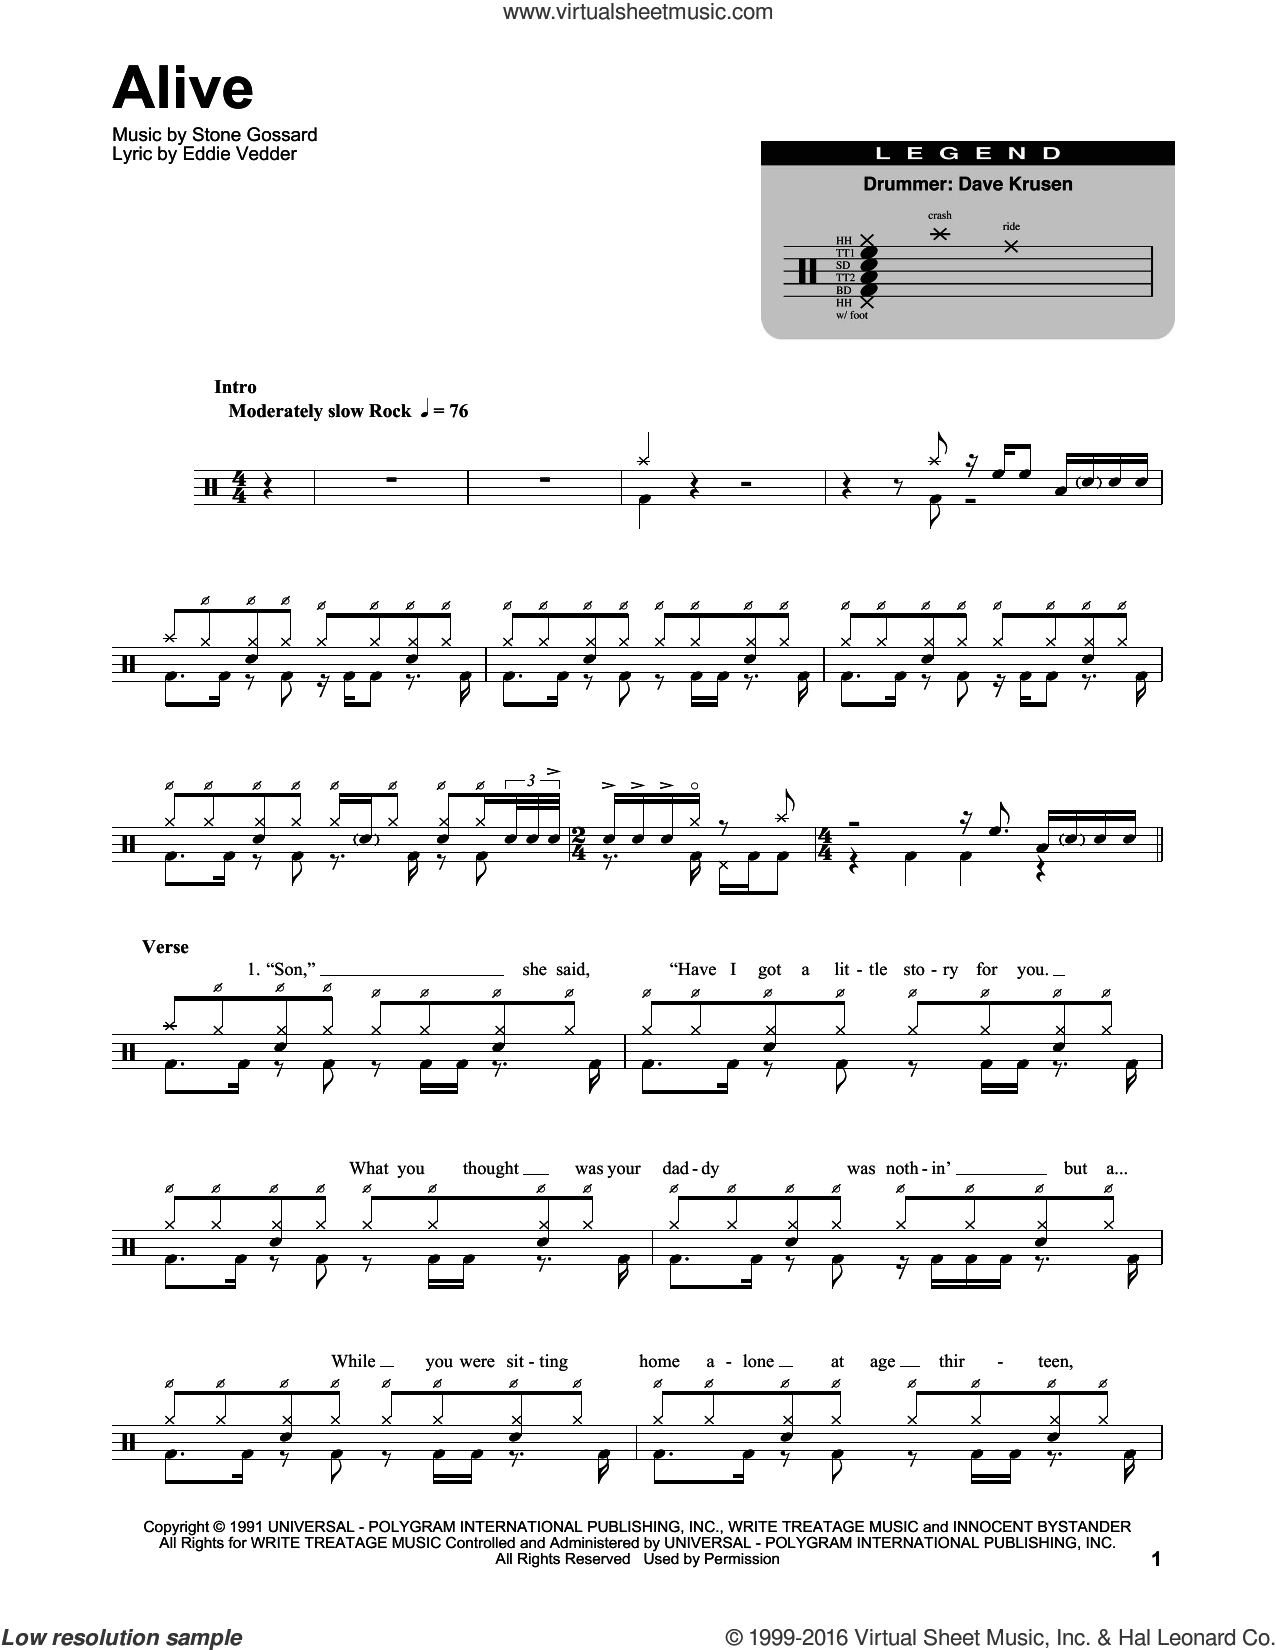 Alive sheet music for drums by Pearl Jam, Eddie Vedder and Stone Gossard, intermediate skill level